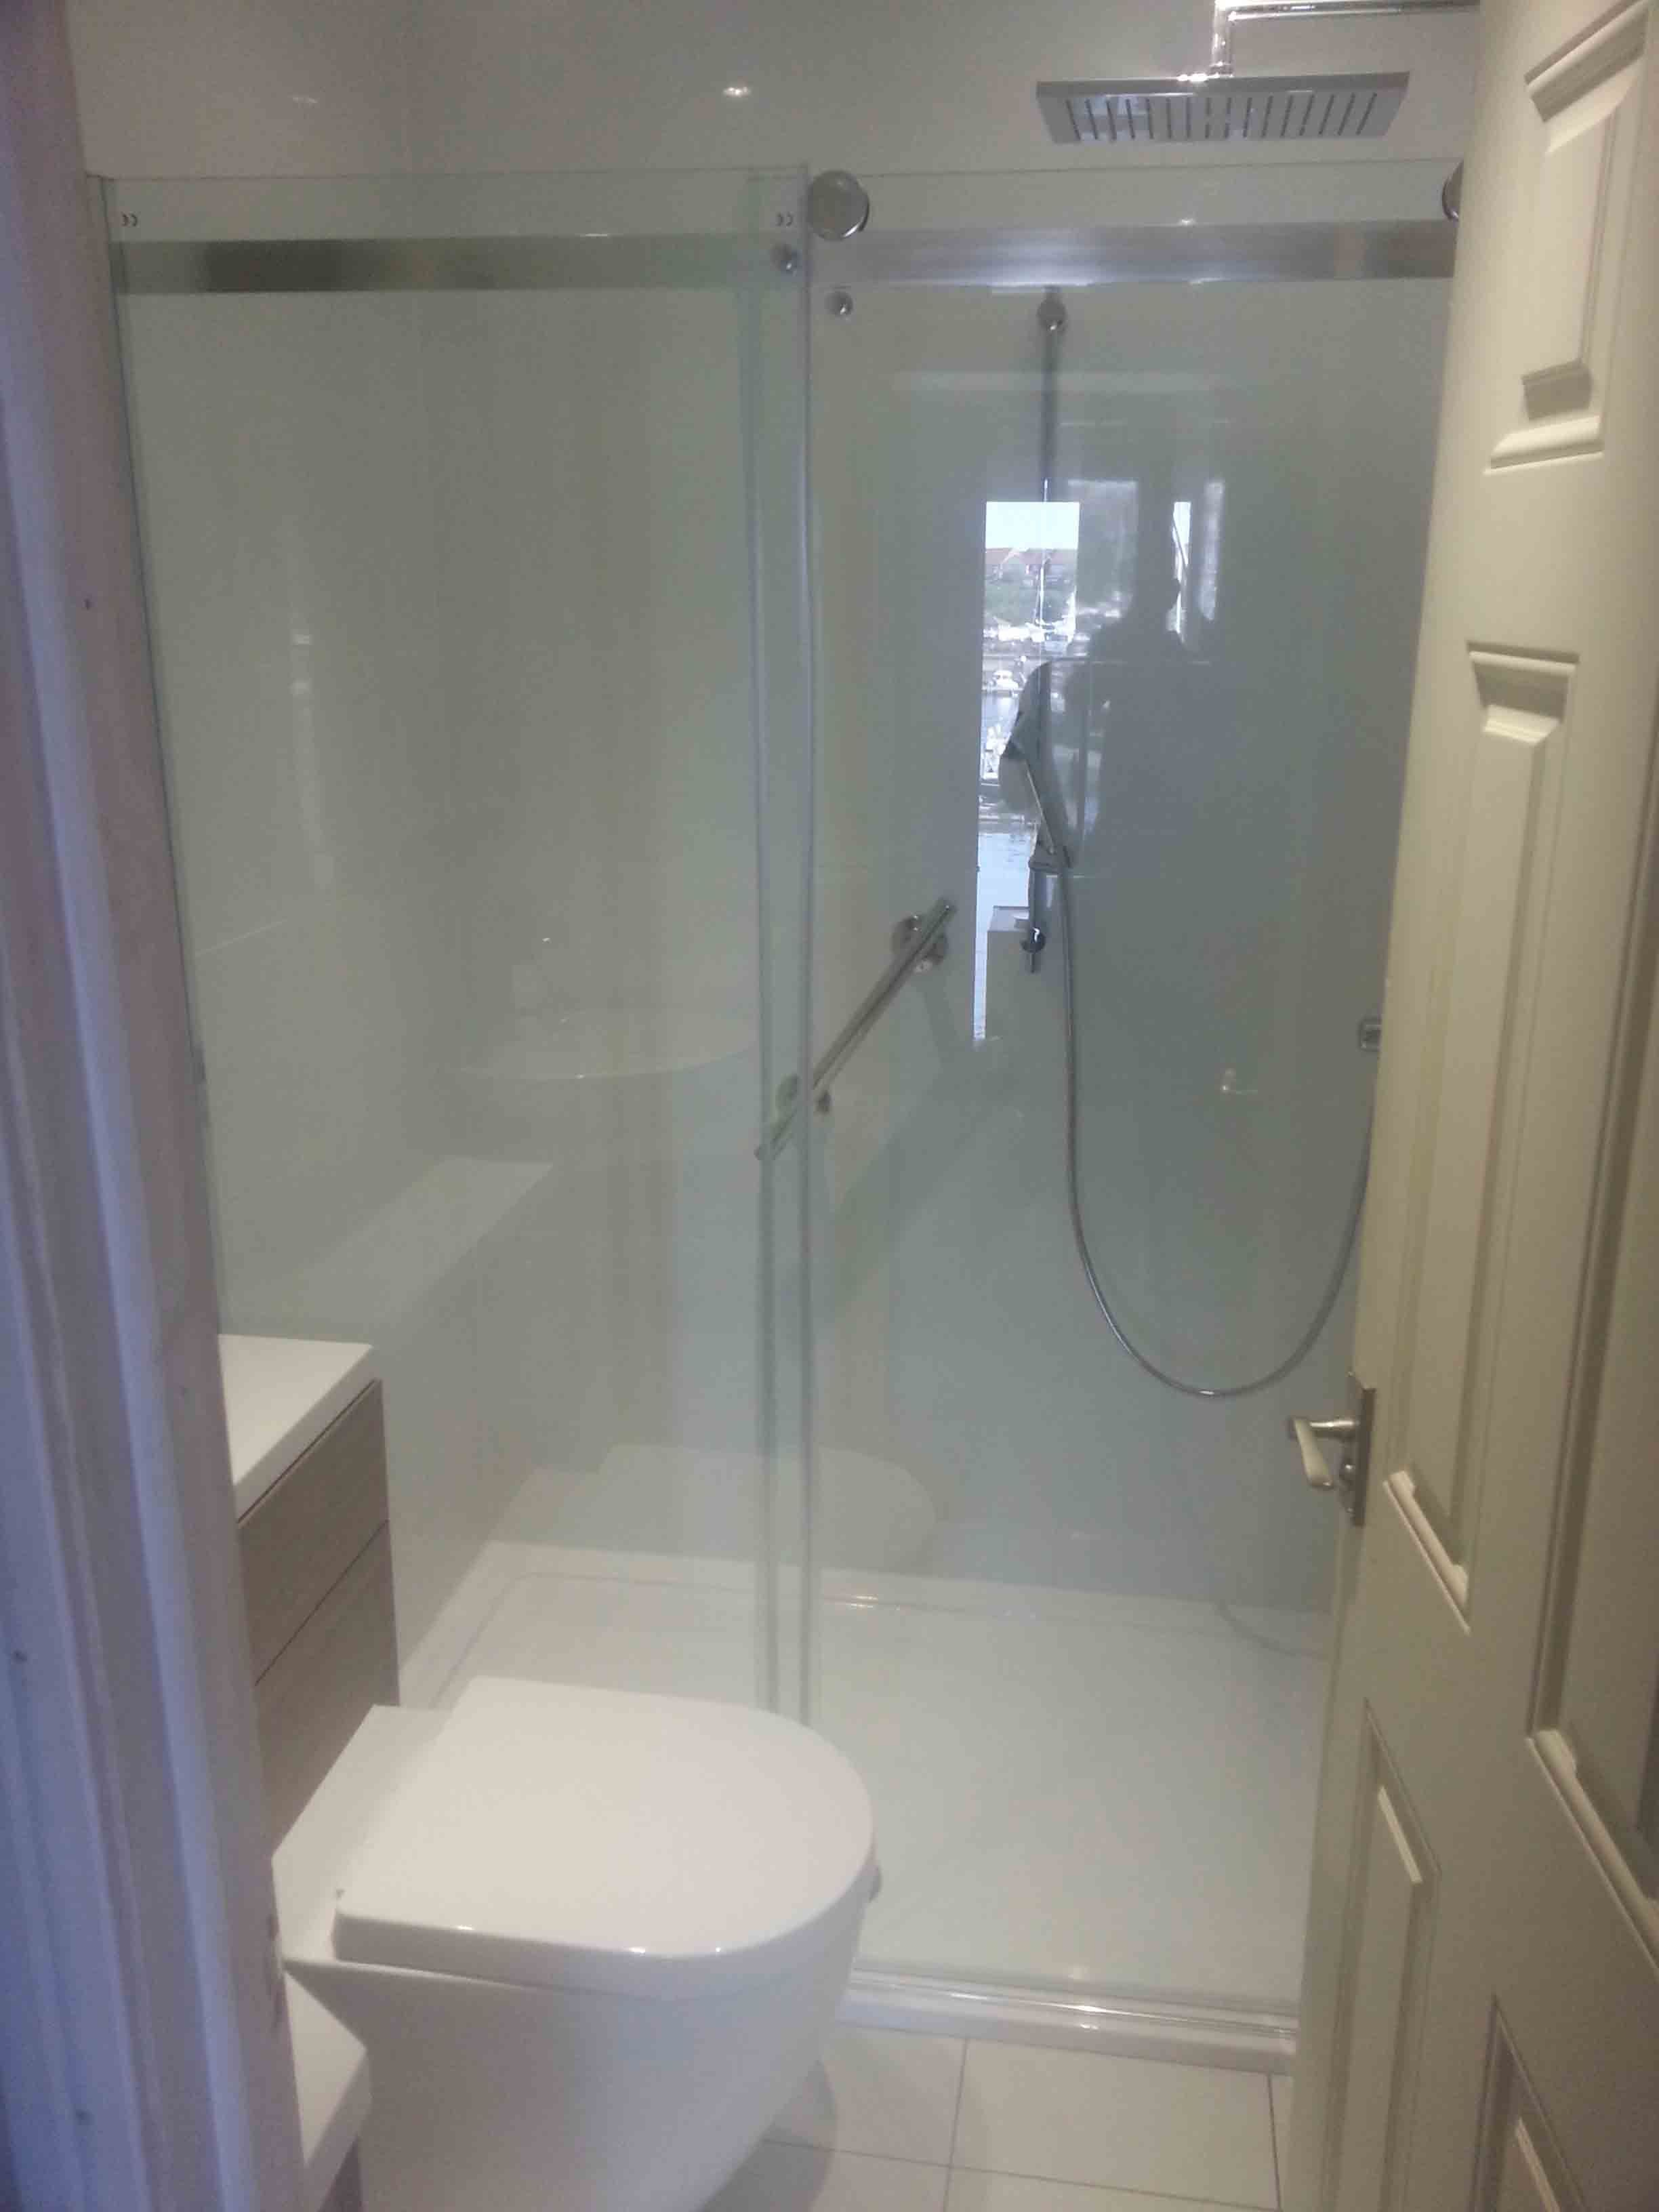 Bespoke Small Bathroom Shower Master Suite Reno Inspiration - Glass block showers small bathrooms for bathroom decor ideas